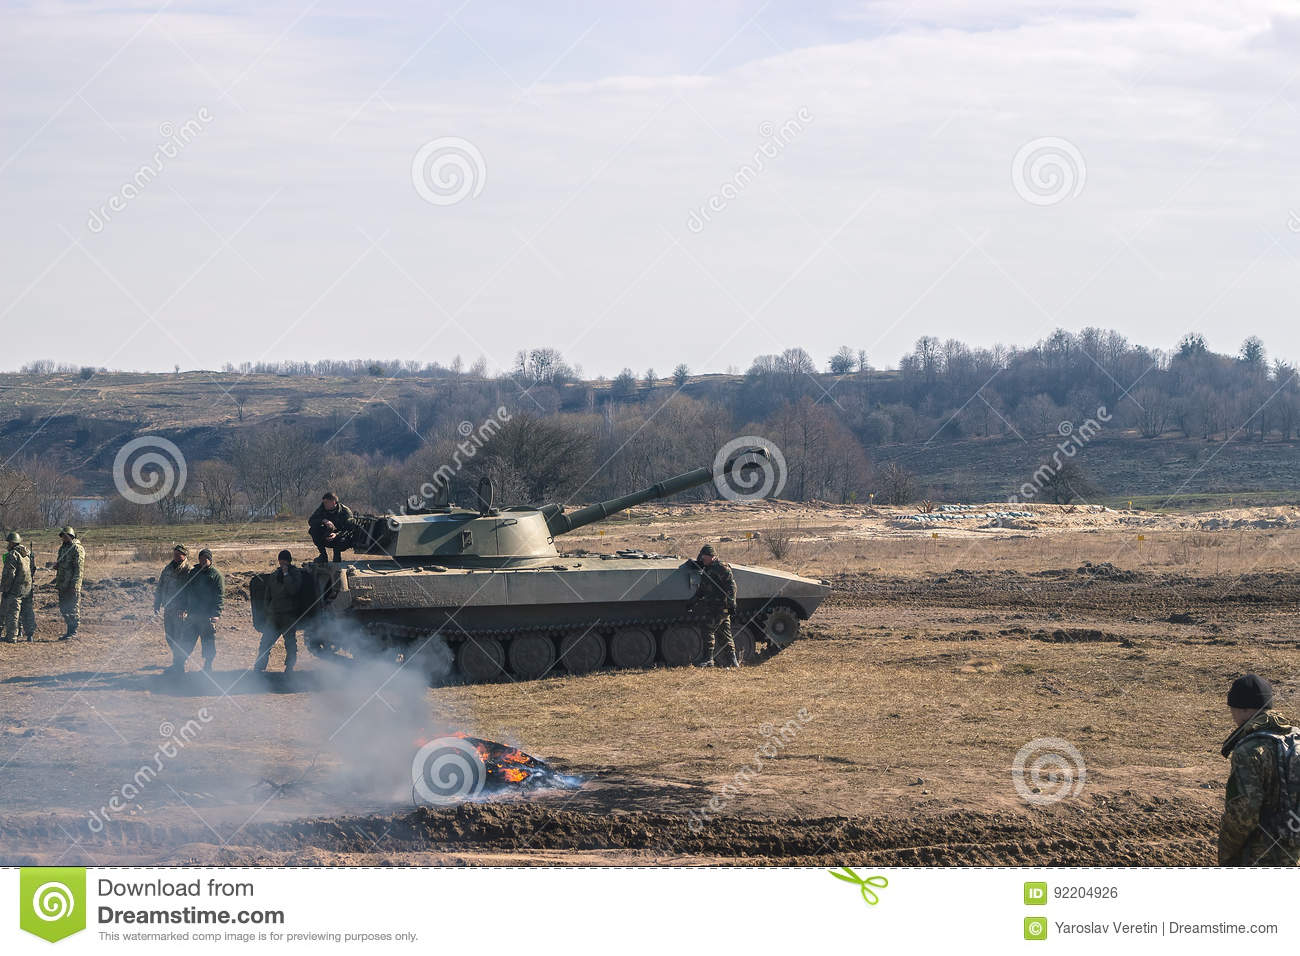 Battle Tanks moving in the desert. War scene NATO. Battlefield.